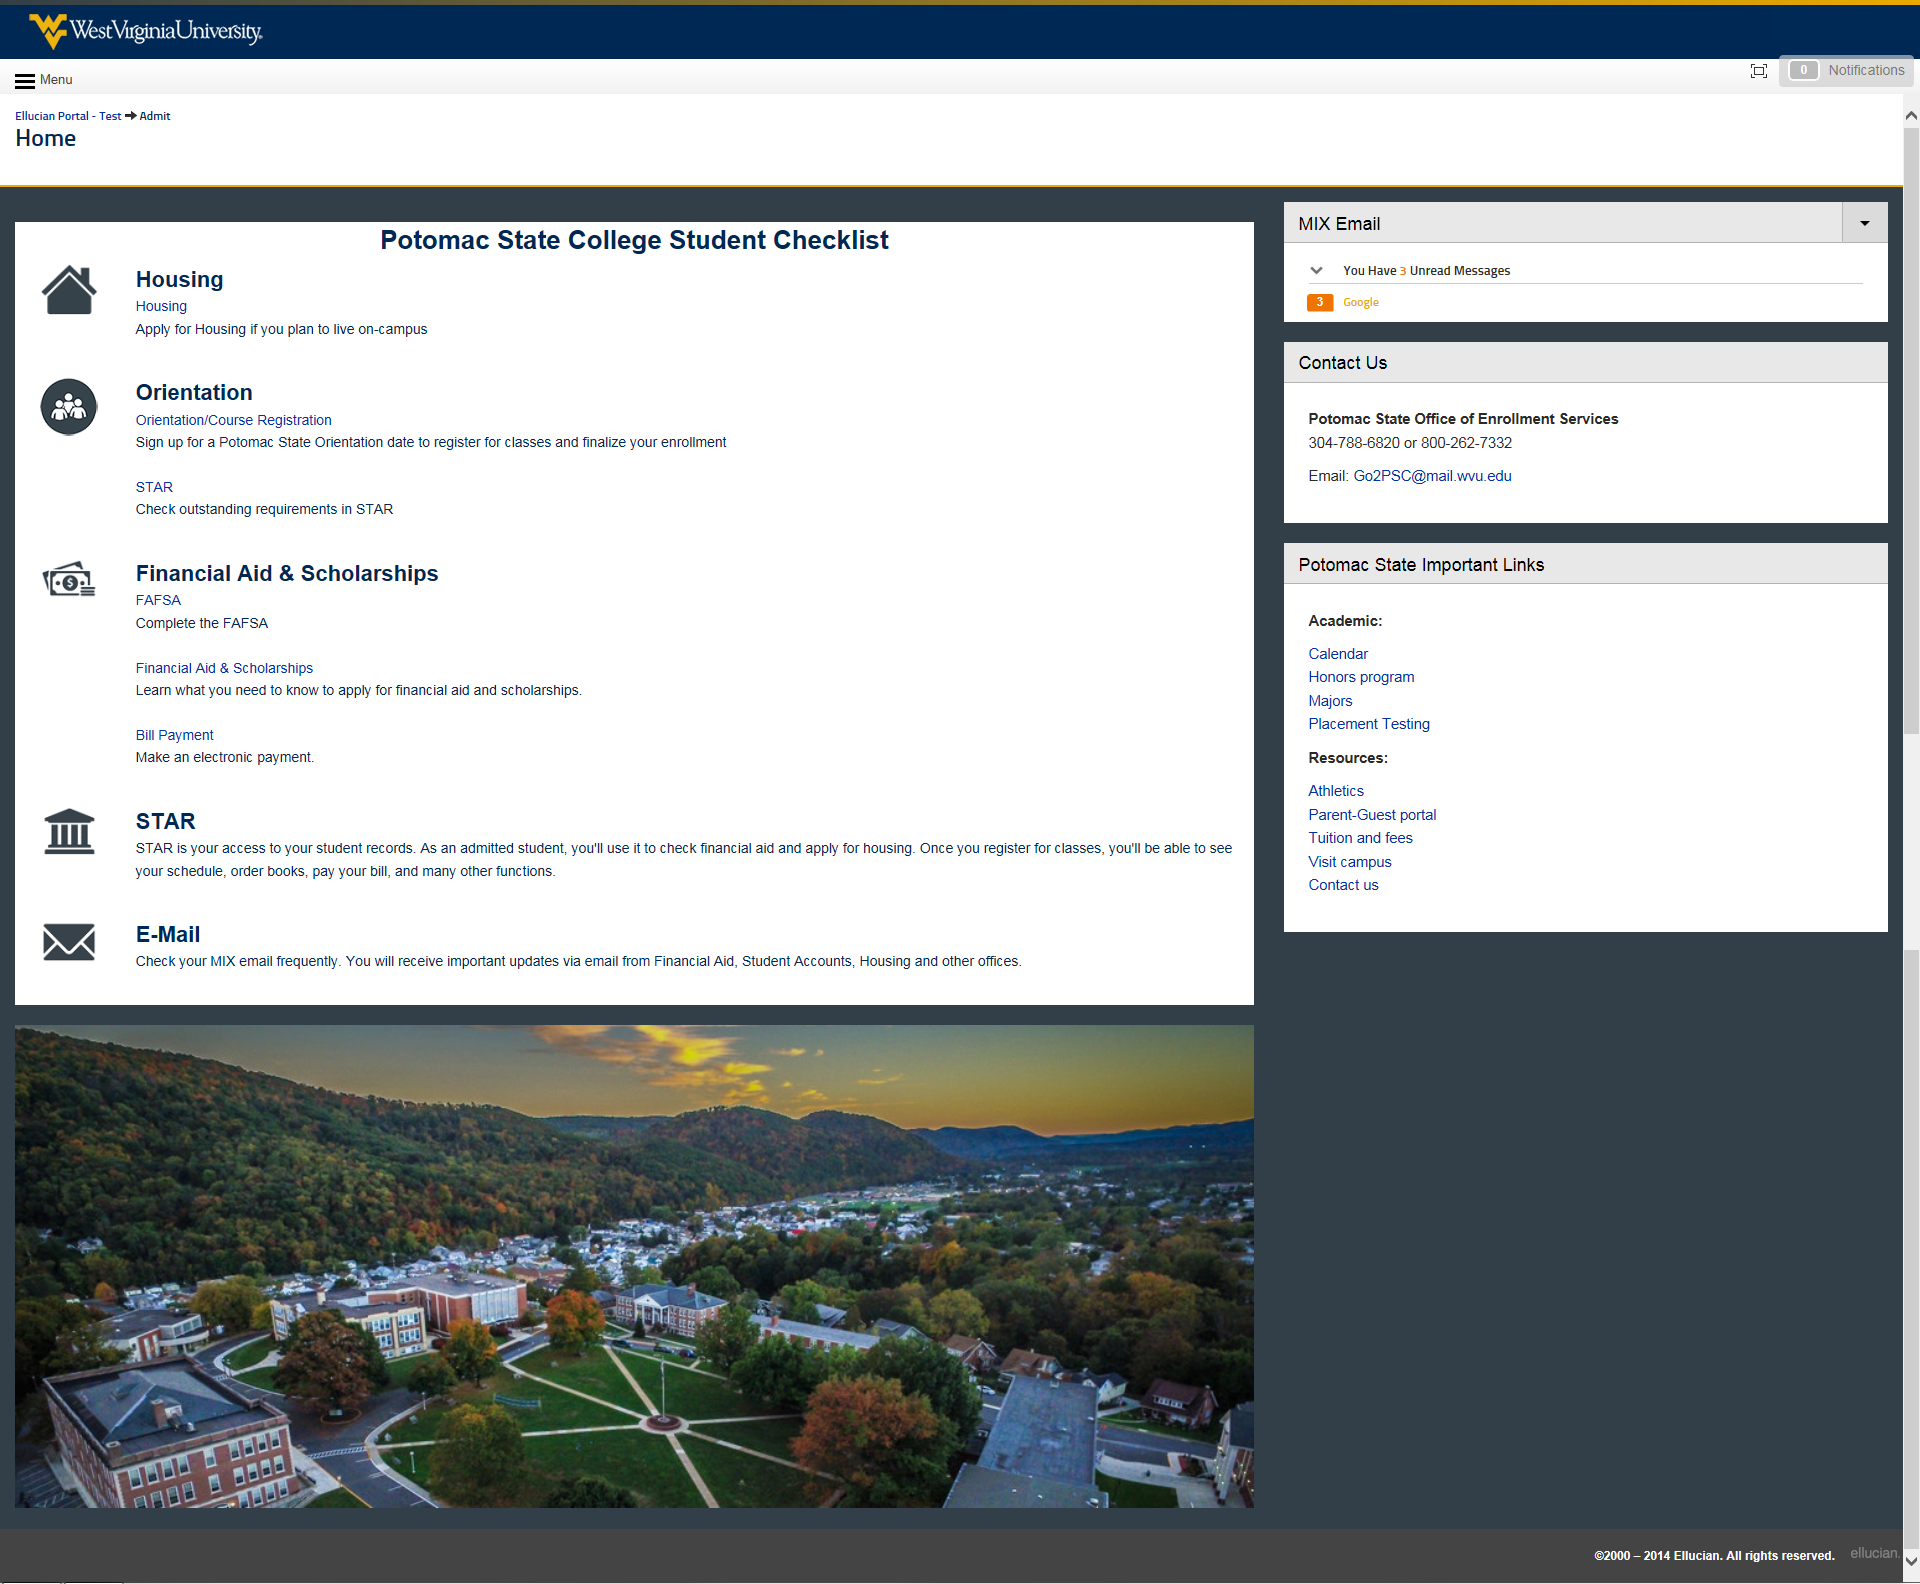 potomac state view of the admit portal